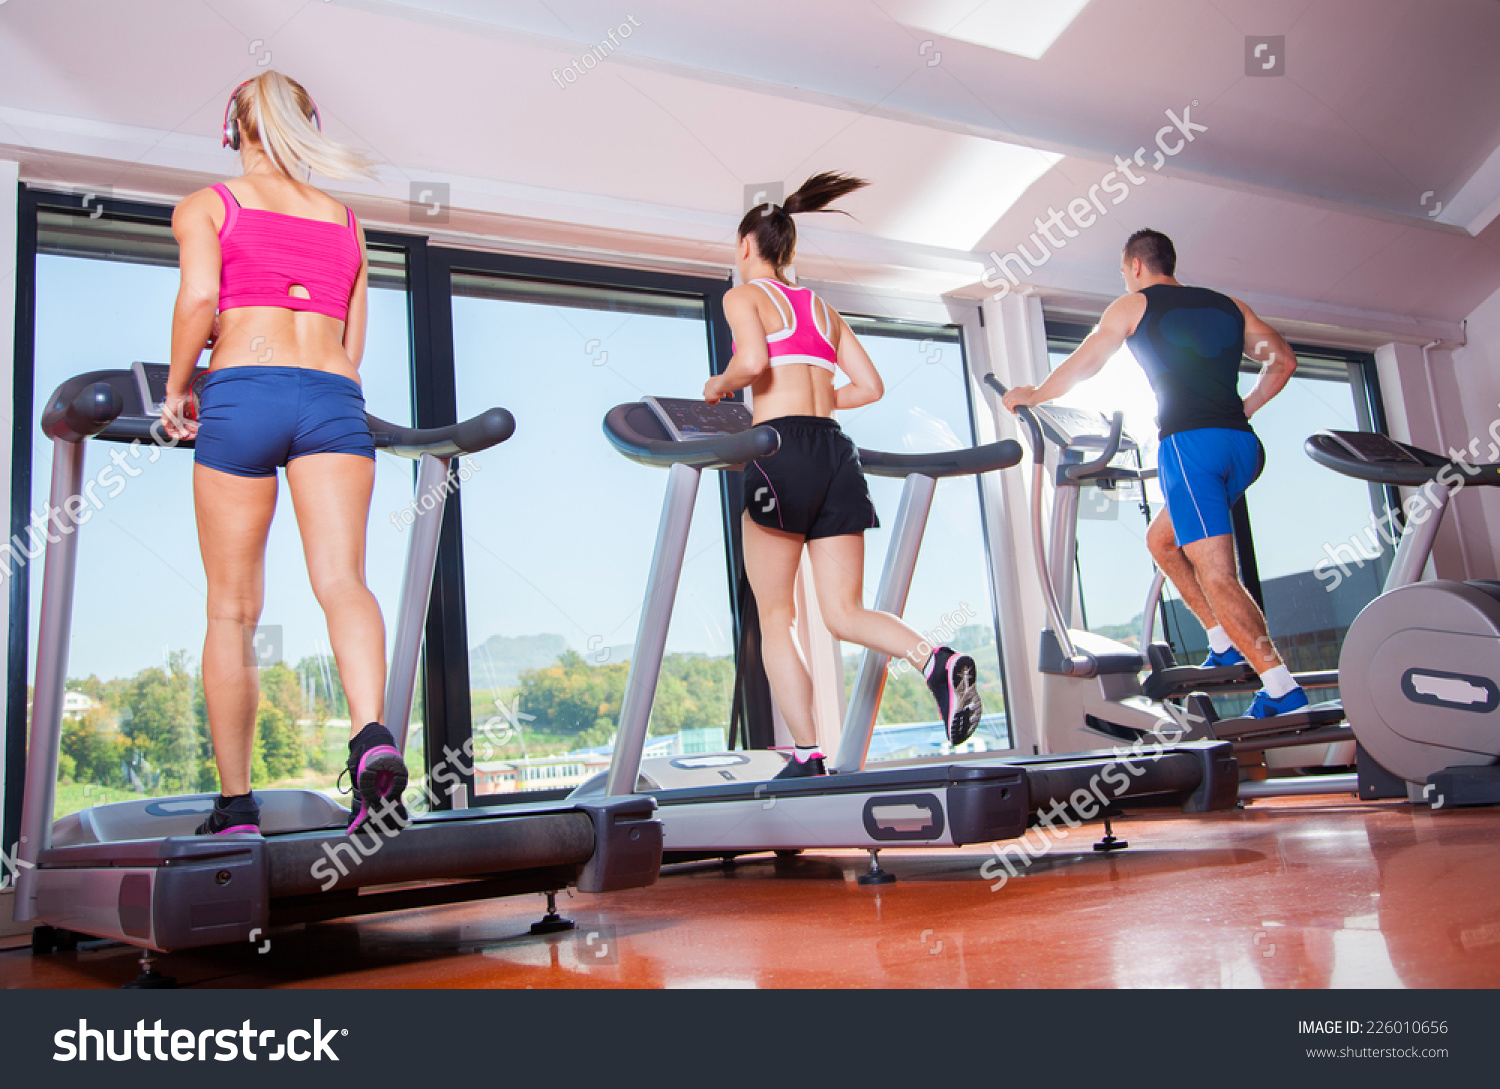 gym shot - people running on machines, treadmill #226010656